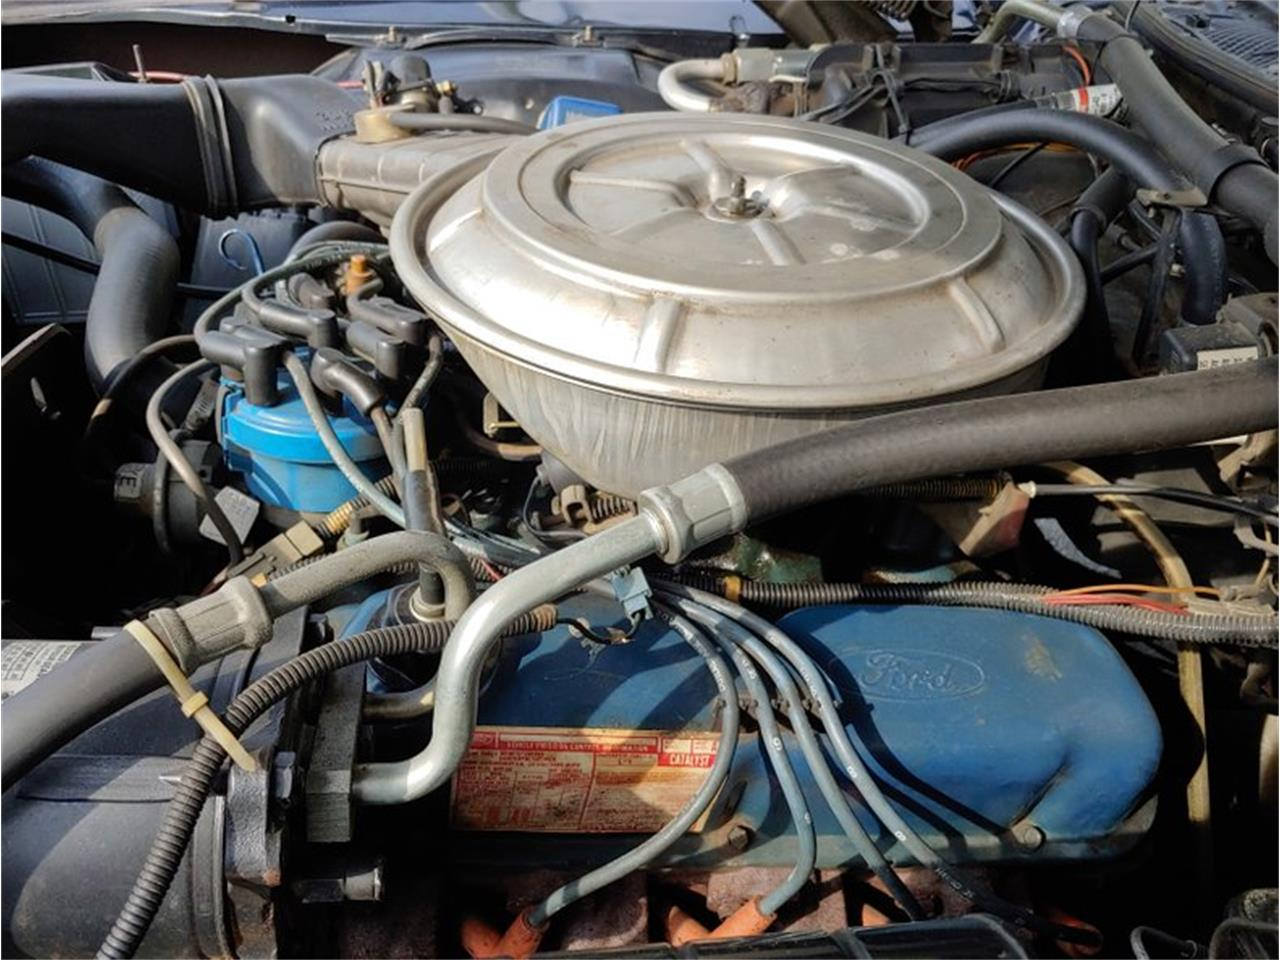 1978 Ford LTD for sale in Cookeville, TN – photo 39